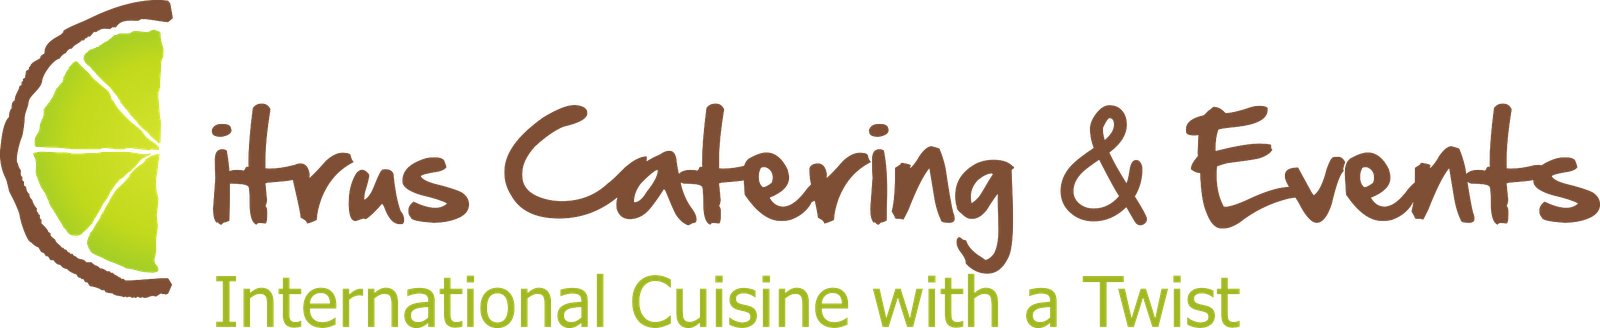 Citrus Catering &amp; Events: The Foodie Blog